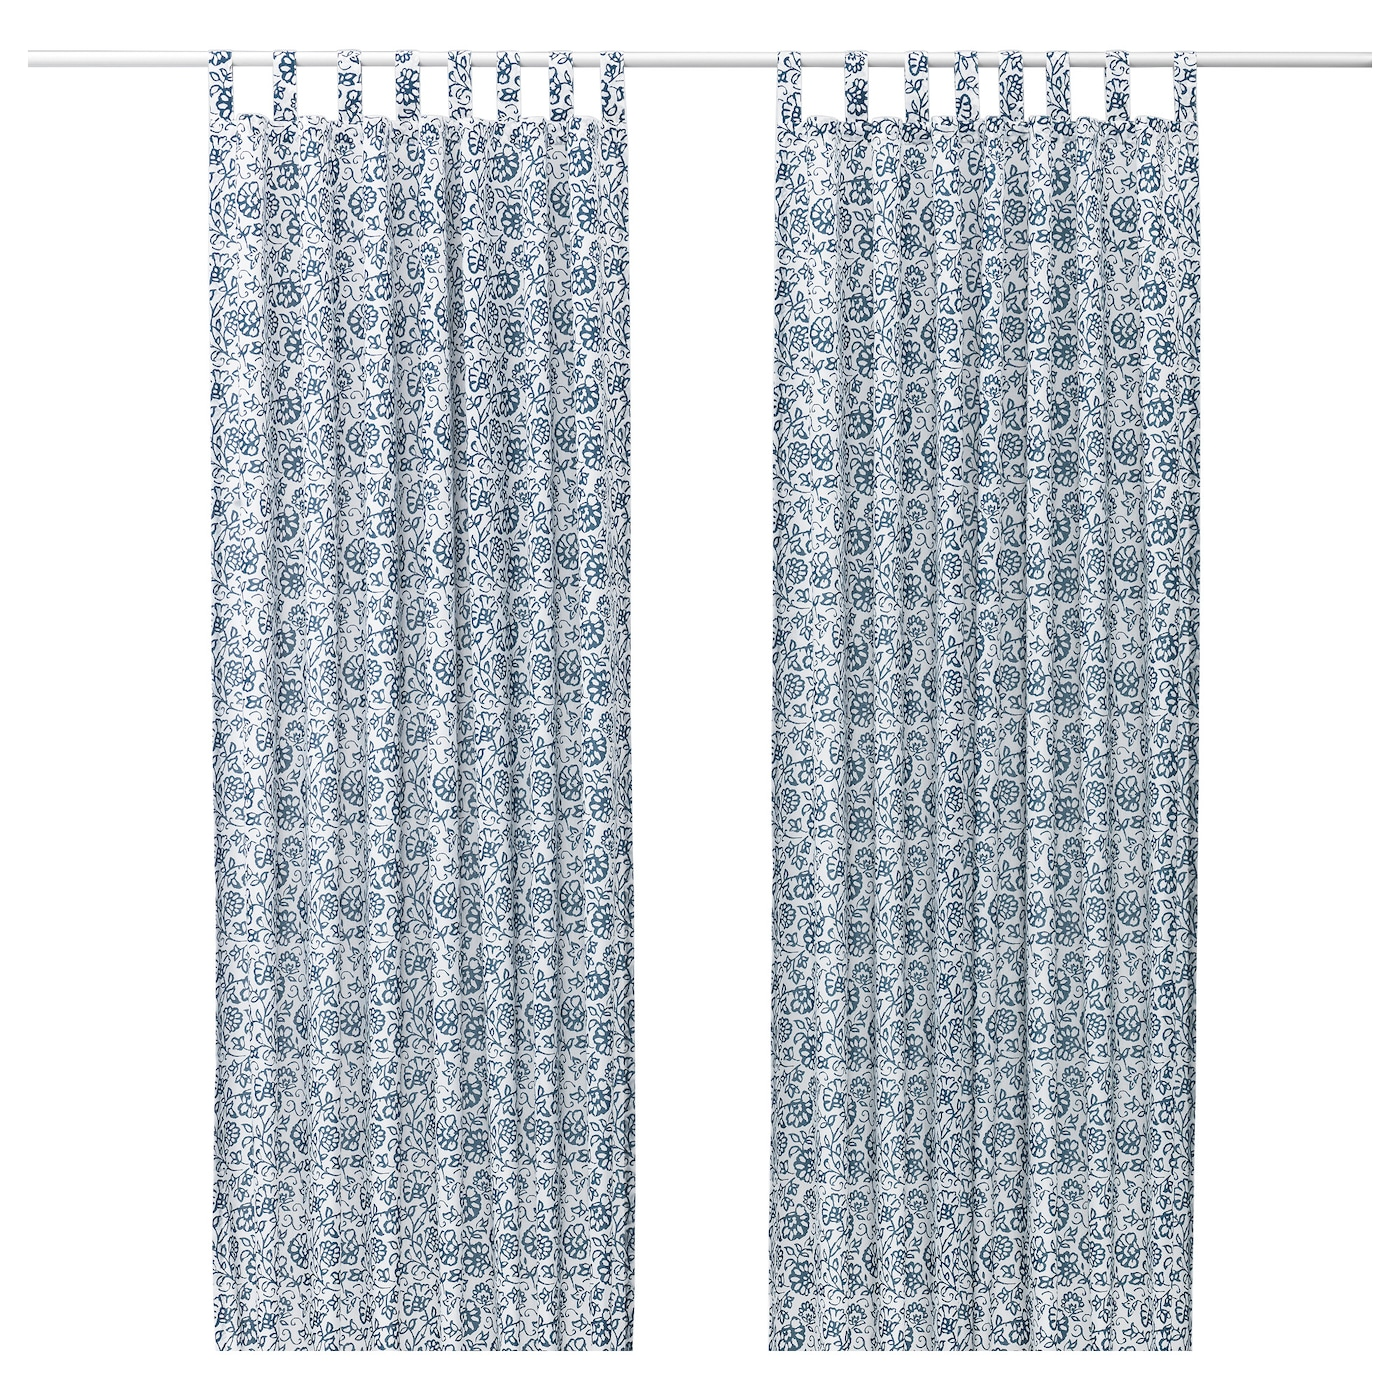 Ikea curtains blue - Ikea Mj Lk Rt Curtains 1 Pair The Curtains Can Be Used On A Curtain Rod Or